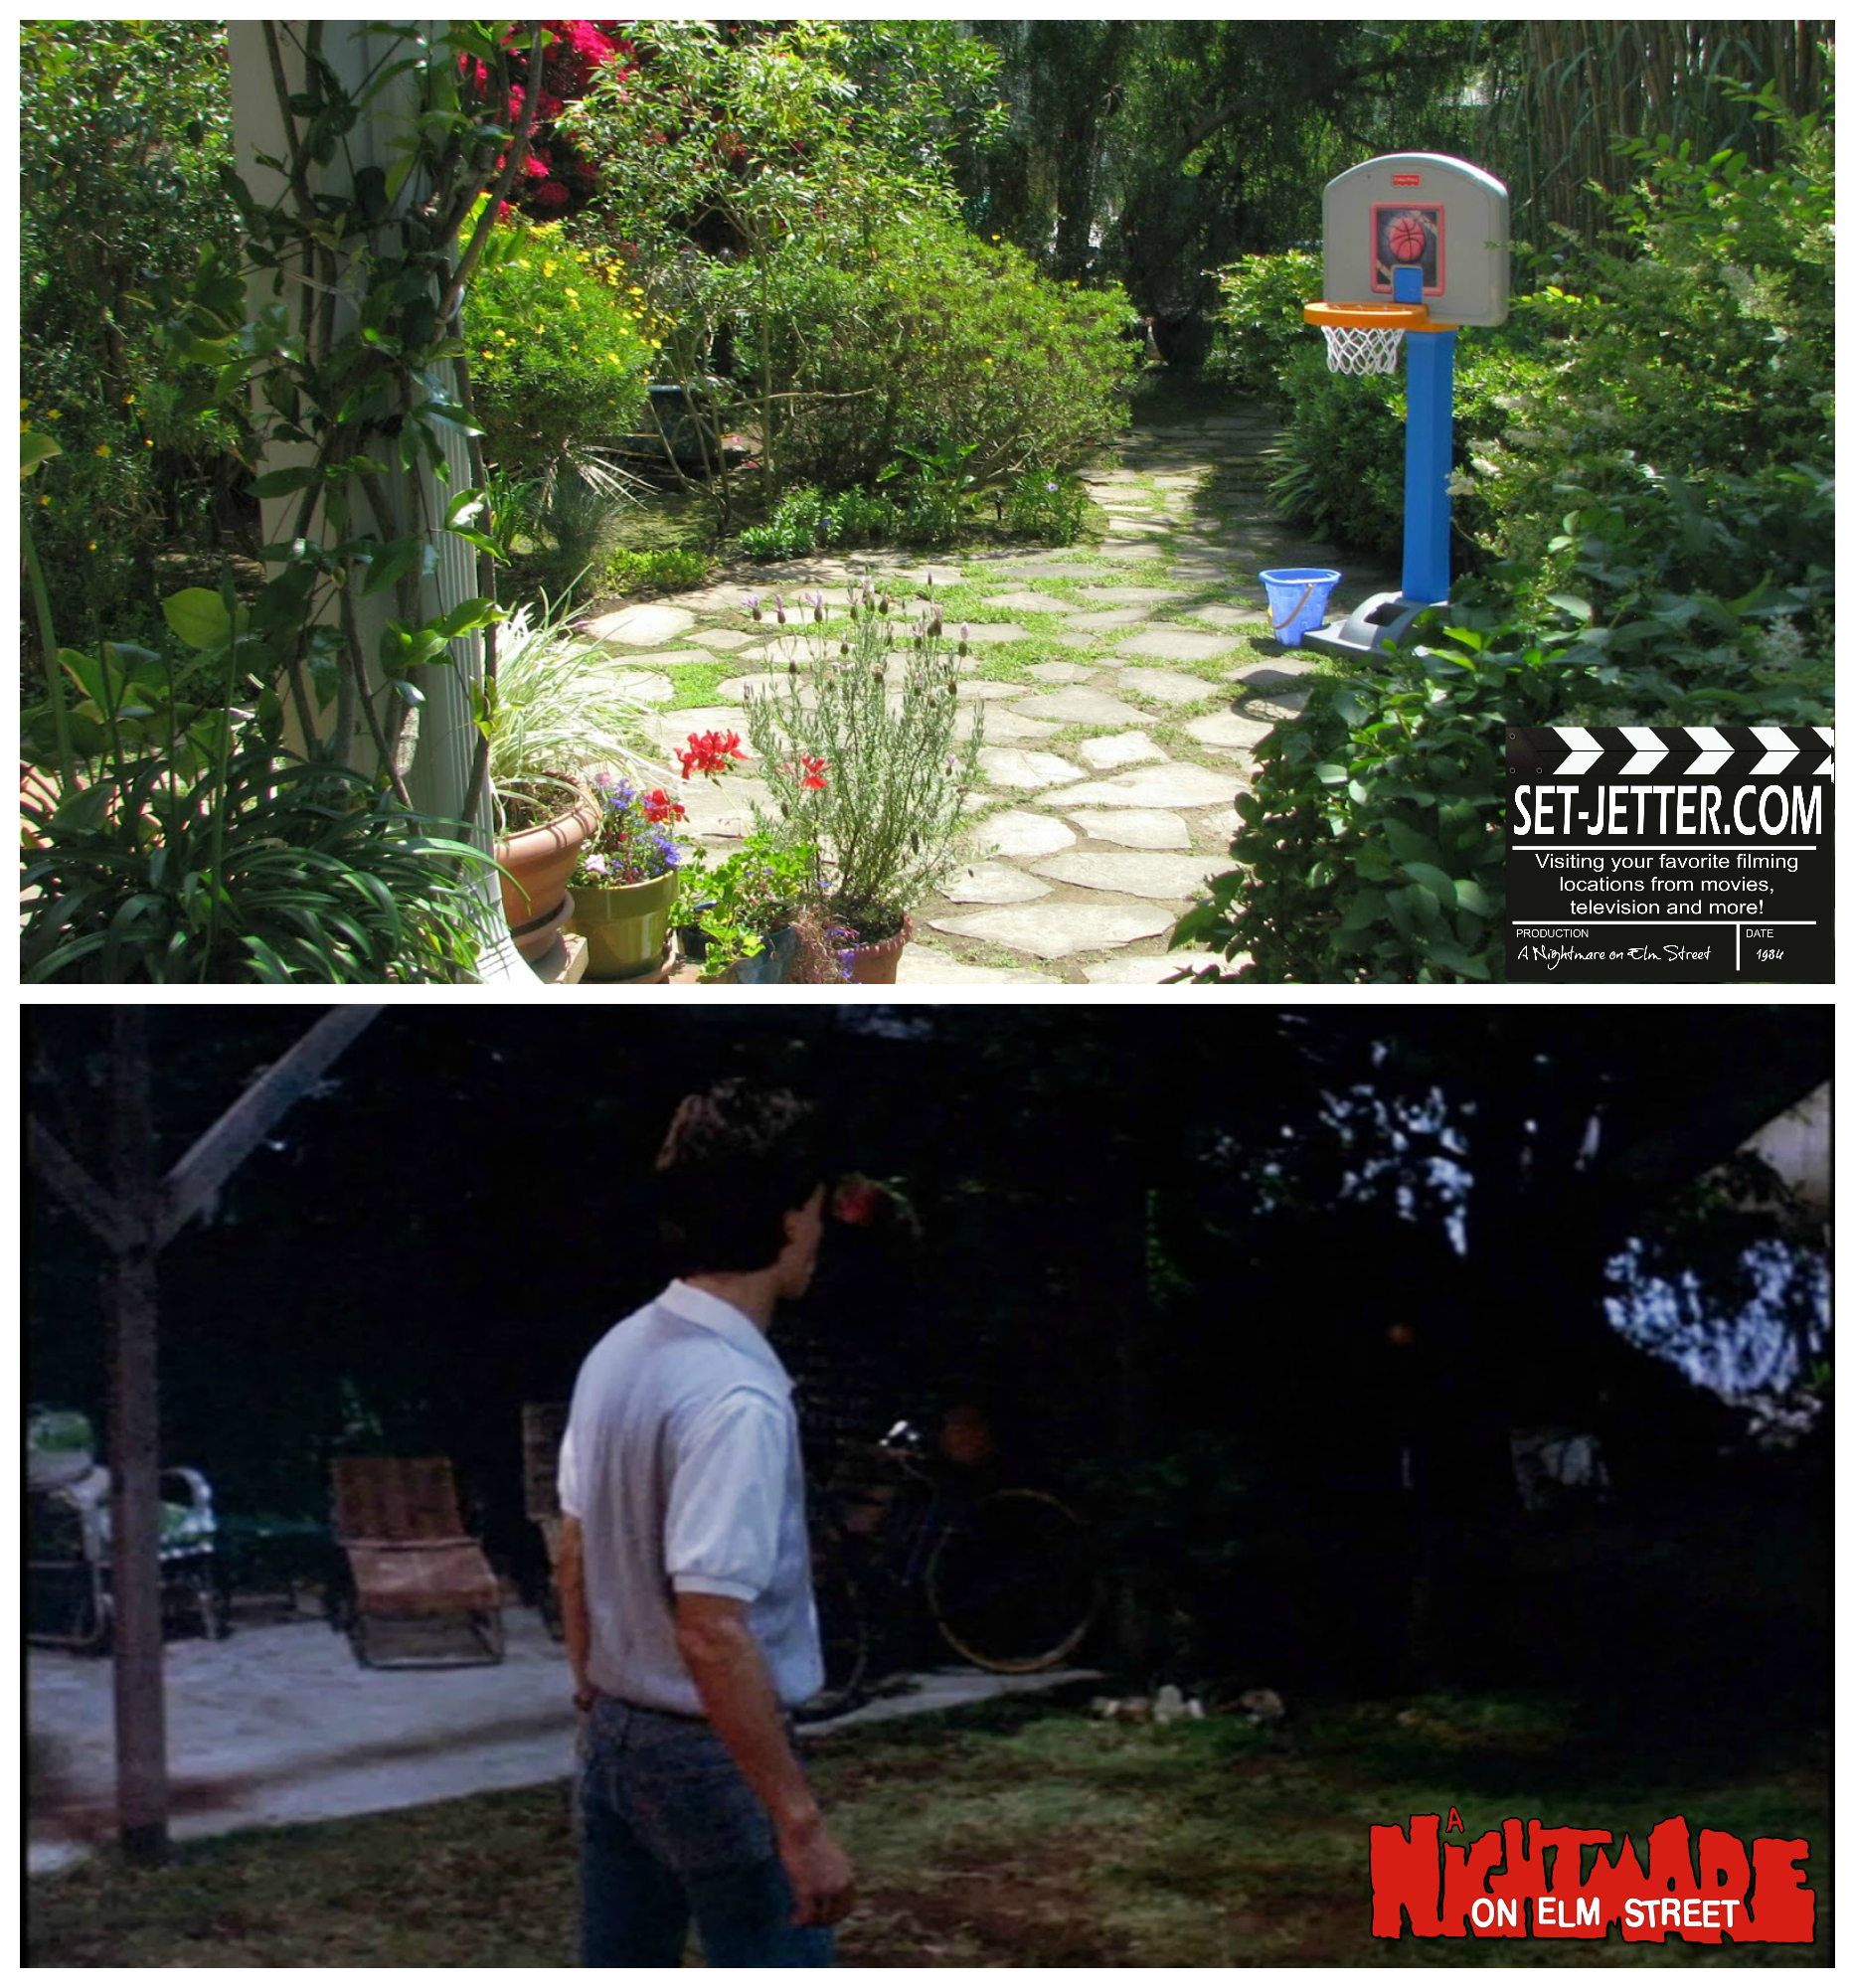 Nightmare on Elm Street comparison 09.jpg